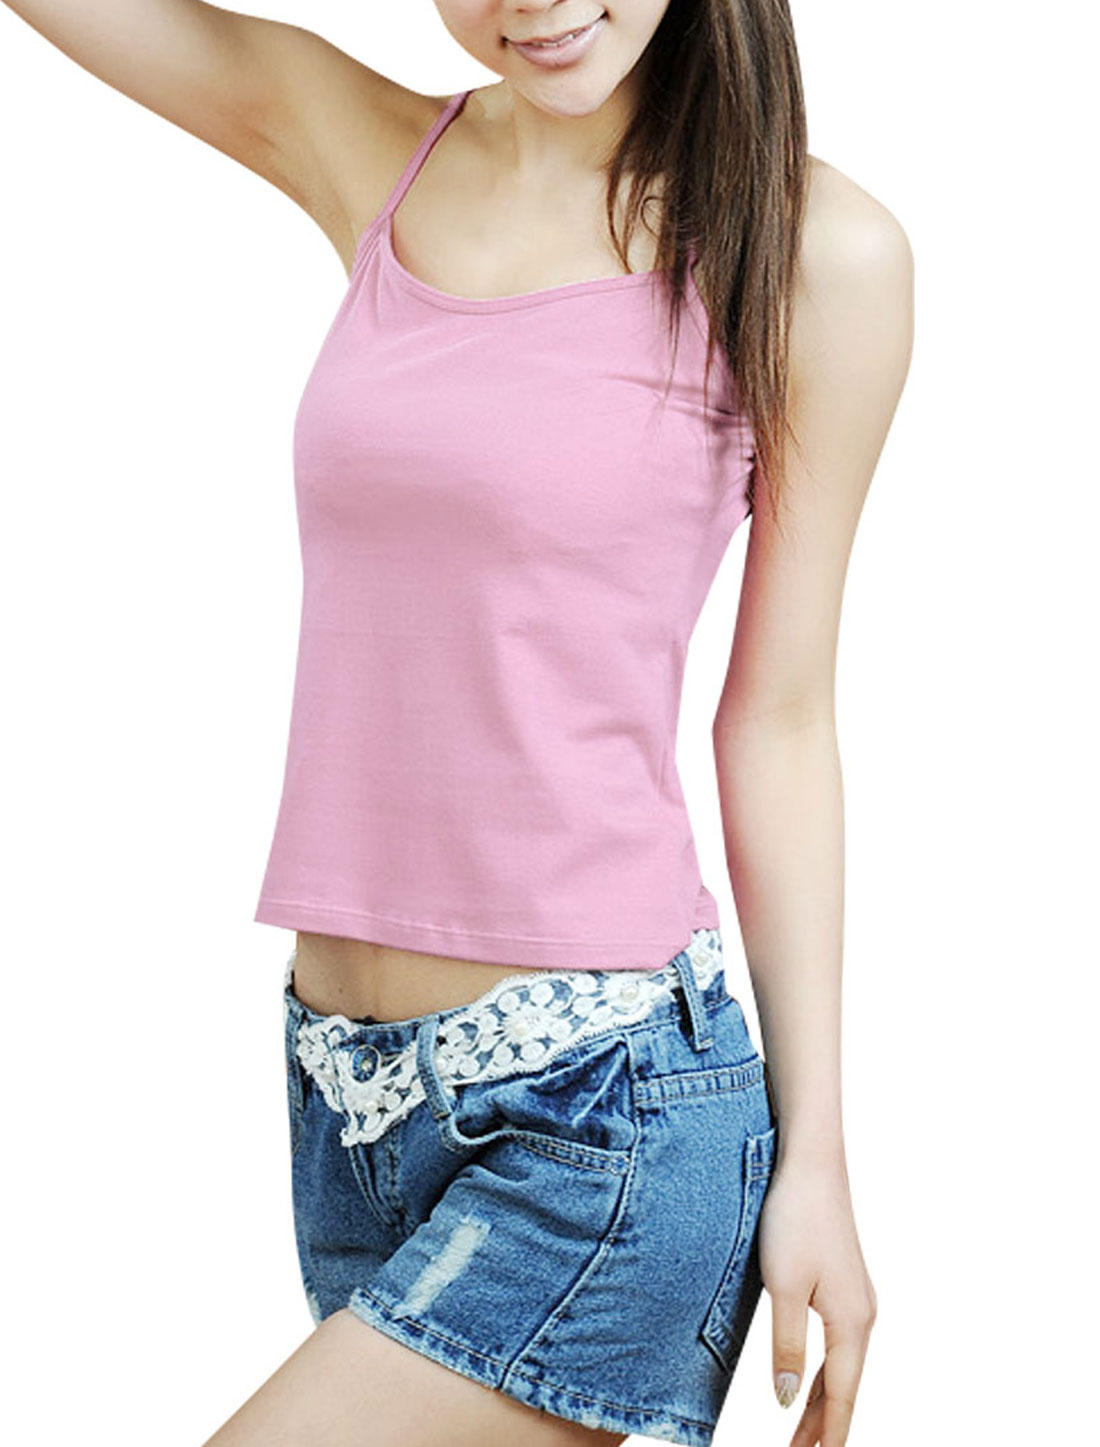 Size XS Solid Pink Stretchy Basic Tank Top Cami Shirt for Ladies